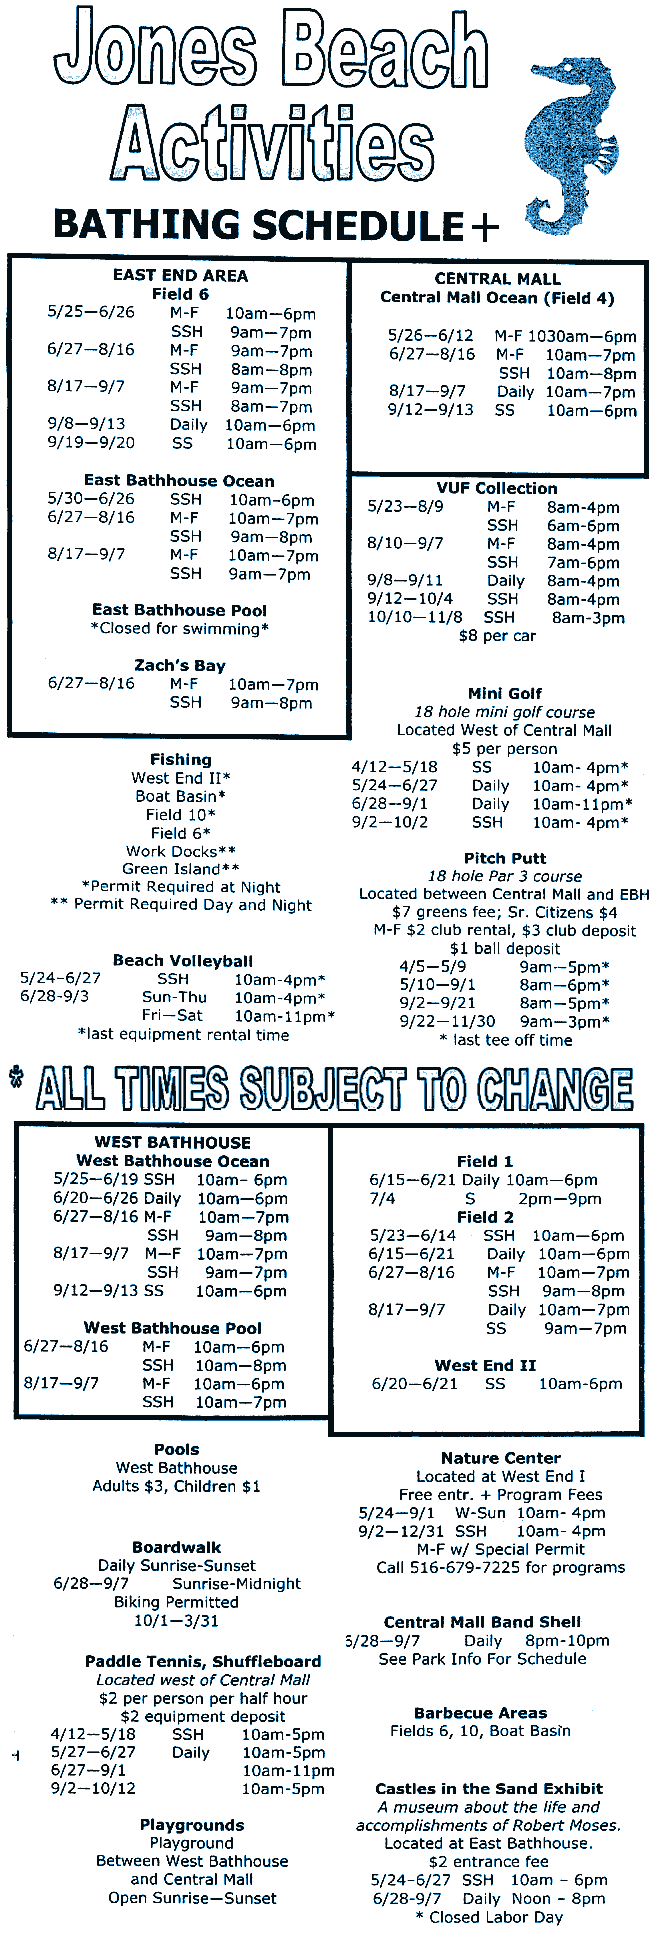 Jones Beach State Park Hours Activities Bathing Schedule